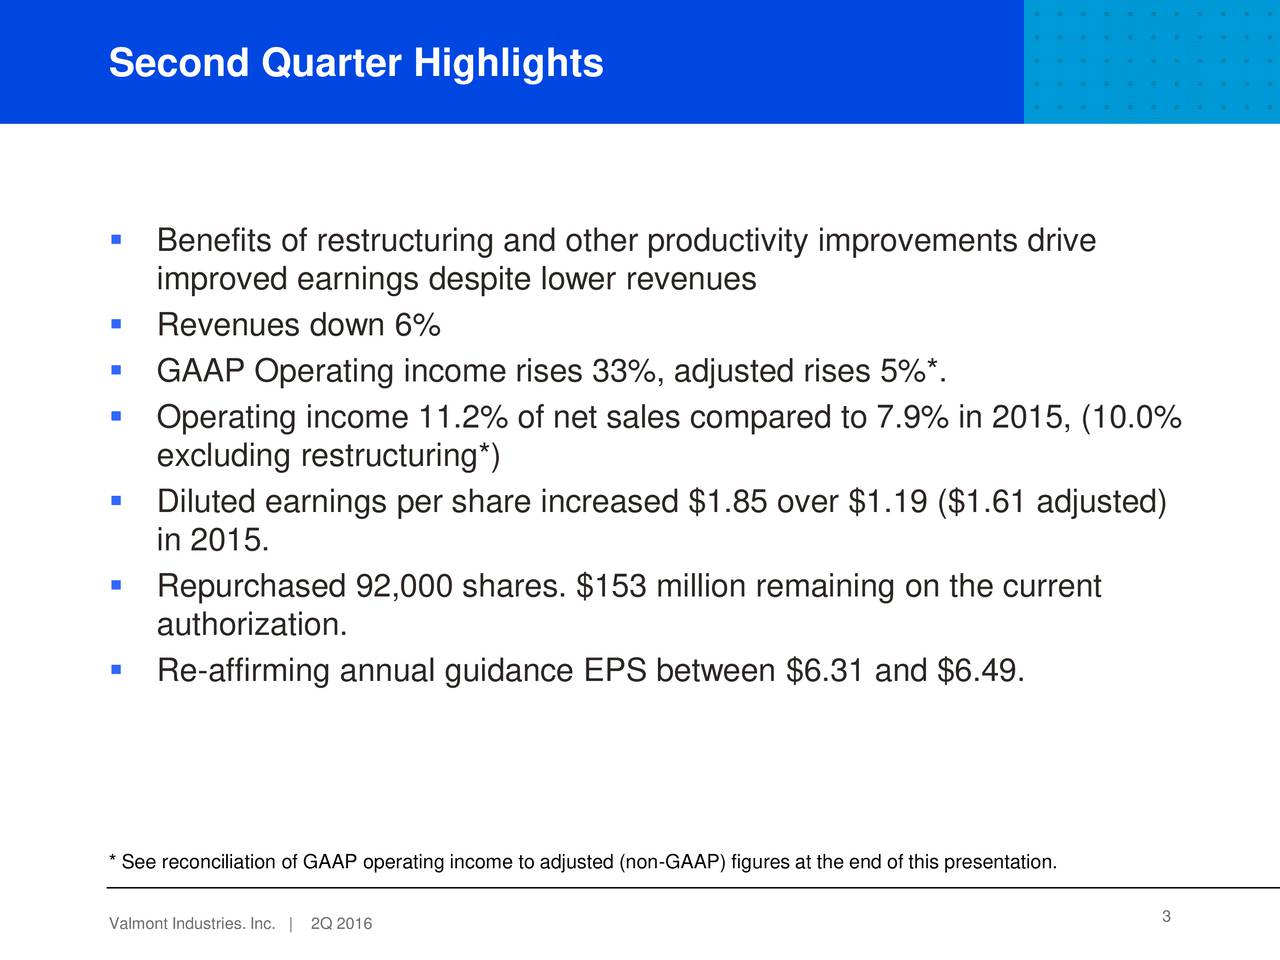 Benefits of restructuring and other productivity improvements drive improved earnings despite lower revenues Revenues down 6% GAAP Operating income rises 33%, adjusted rises 5%*. Operating income 11.2% of net sales compared to 7.9% in 2015, (10.0% excluding restructuring*) Diluted earnings per share increased $1.85 over $1.19 ($1.61 adjusted) in 2015. Repurchased 92,000 shares. $153 million remaining on the current authorization. Re-affirming annual guidance EPS between $6.31 and $6.49. * See reconciliation of GAAP operating income to adjusted (non-GAAP) figures at the end of this presentation. Valmont Industr2Q 2016c. | 3